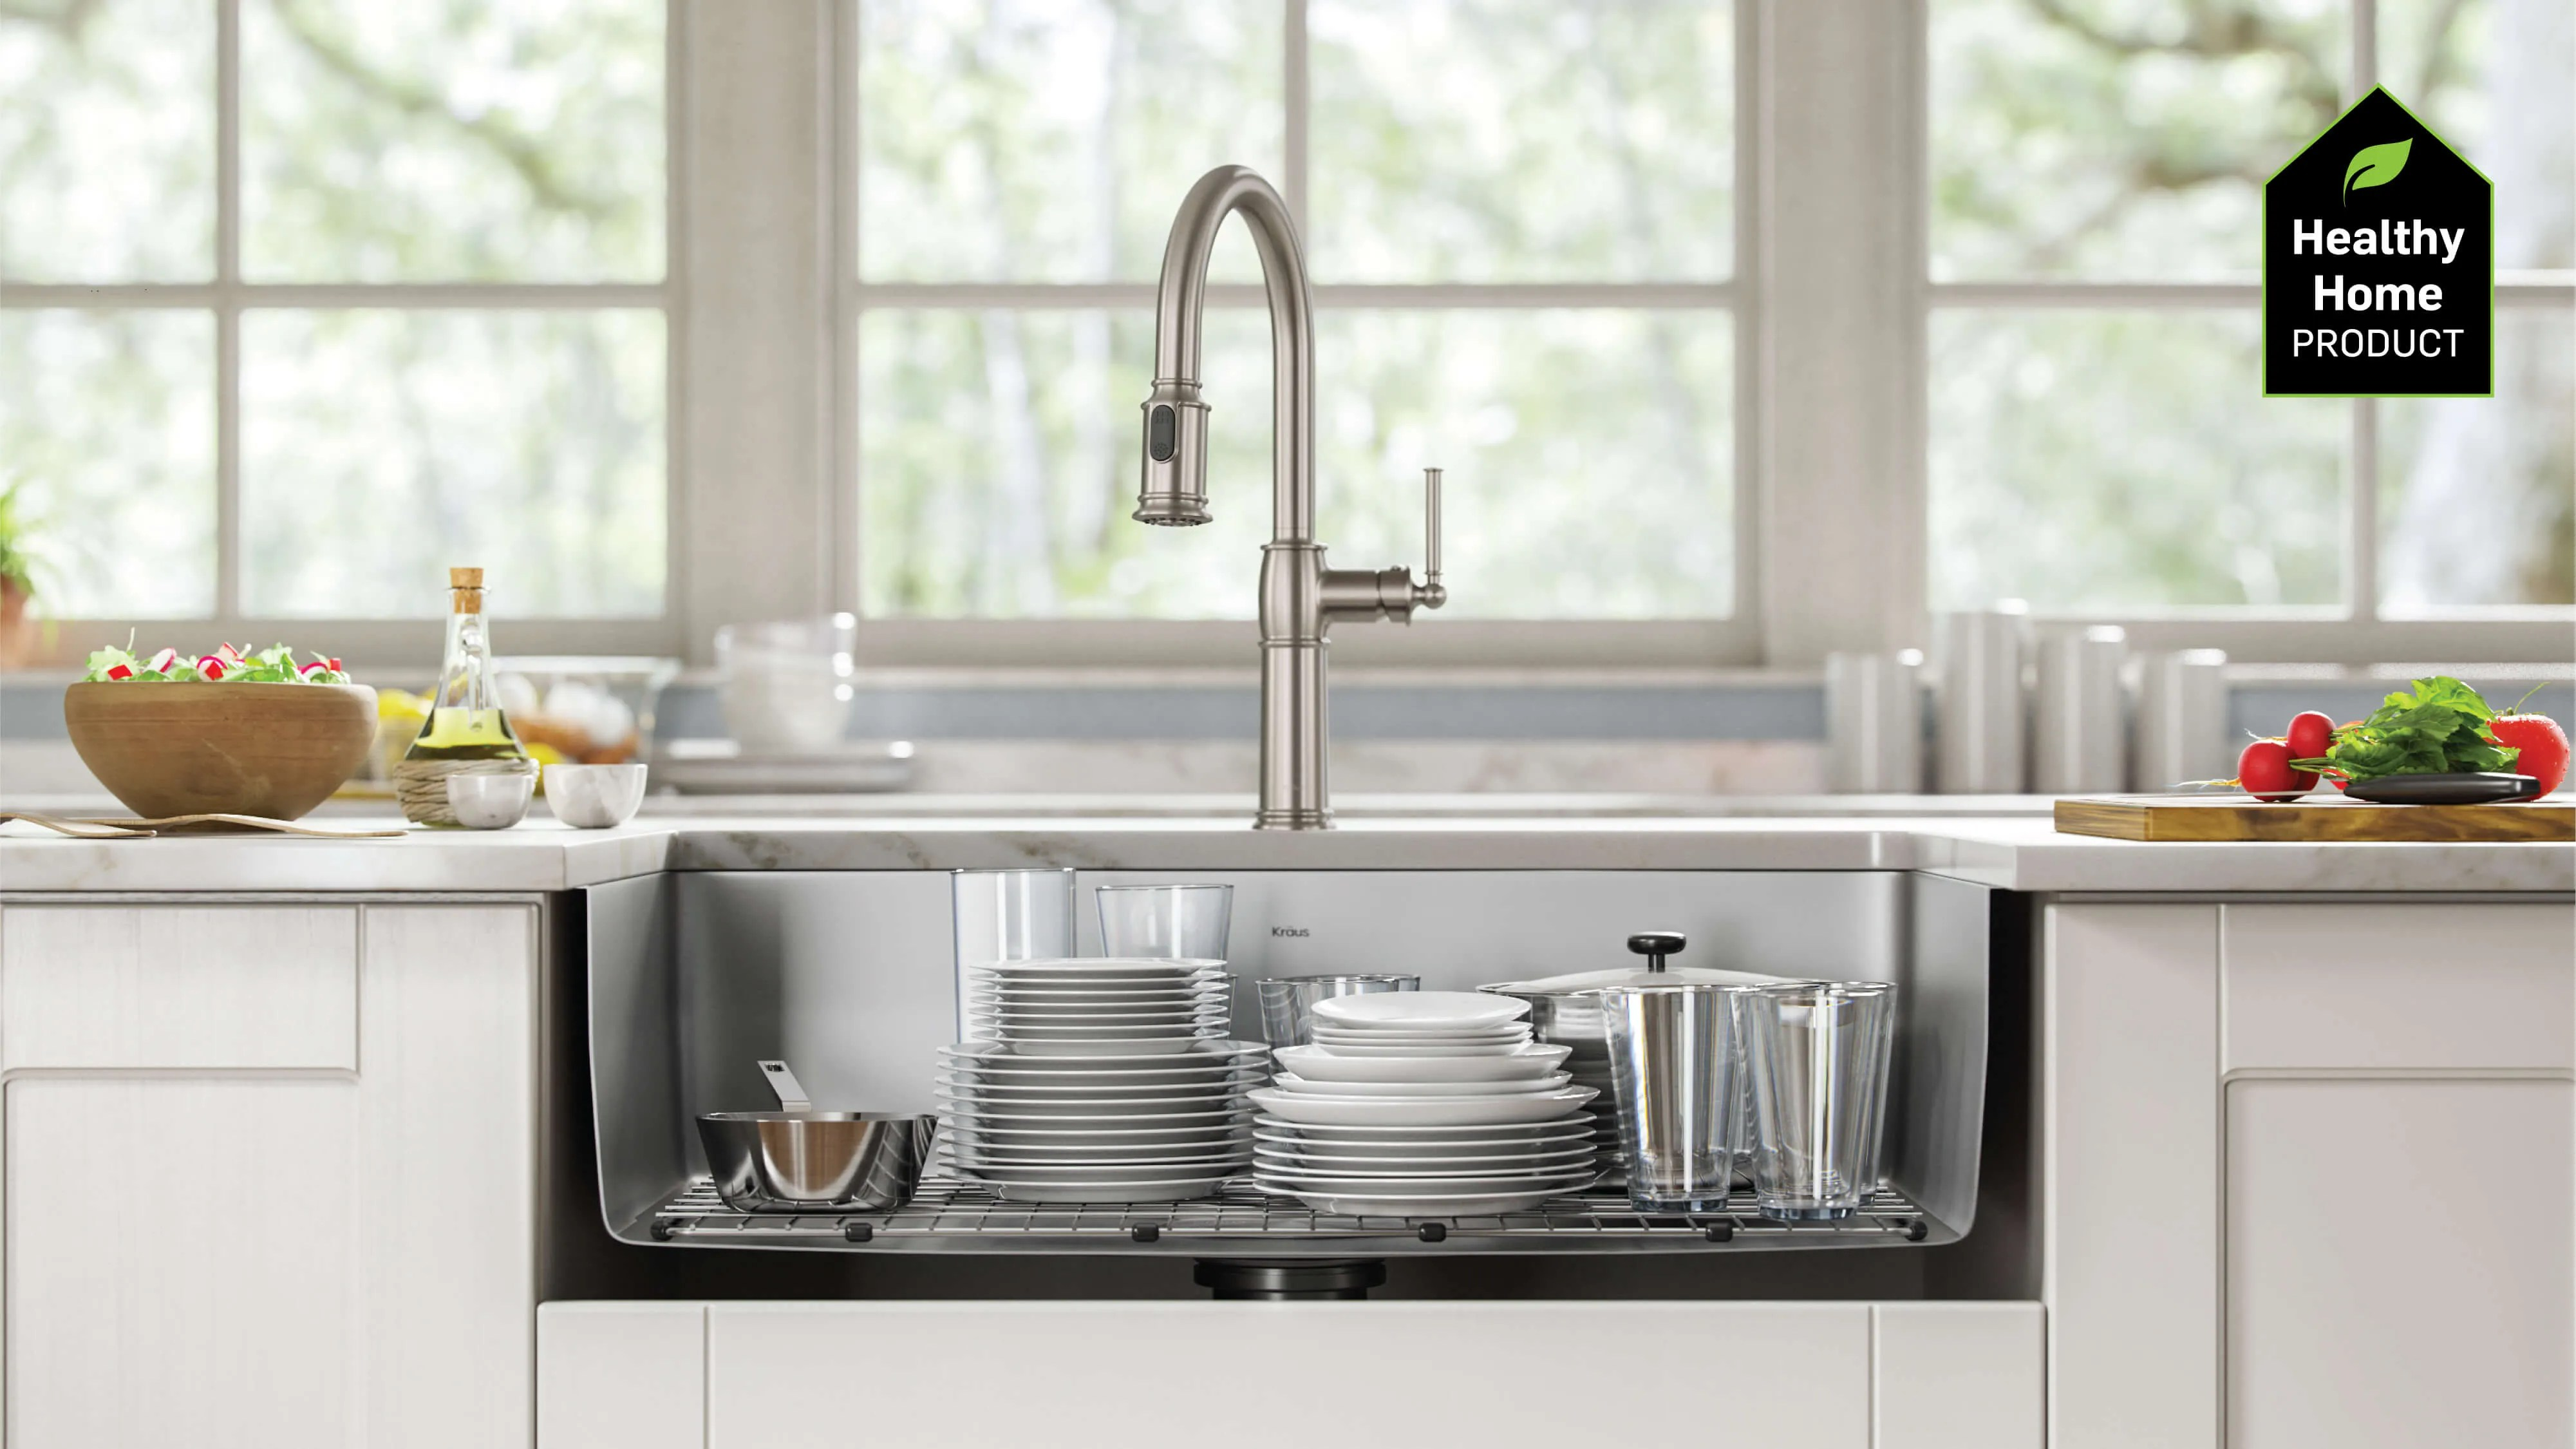 Kraus Trend Report Kitchen Sinks For A Healthy Home